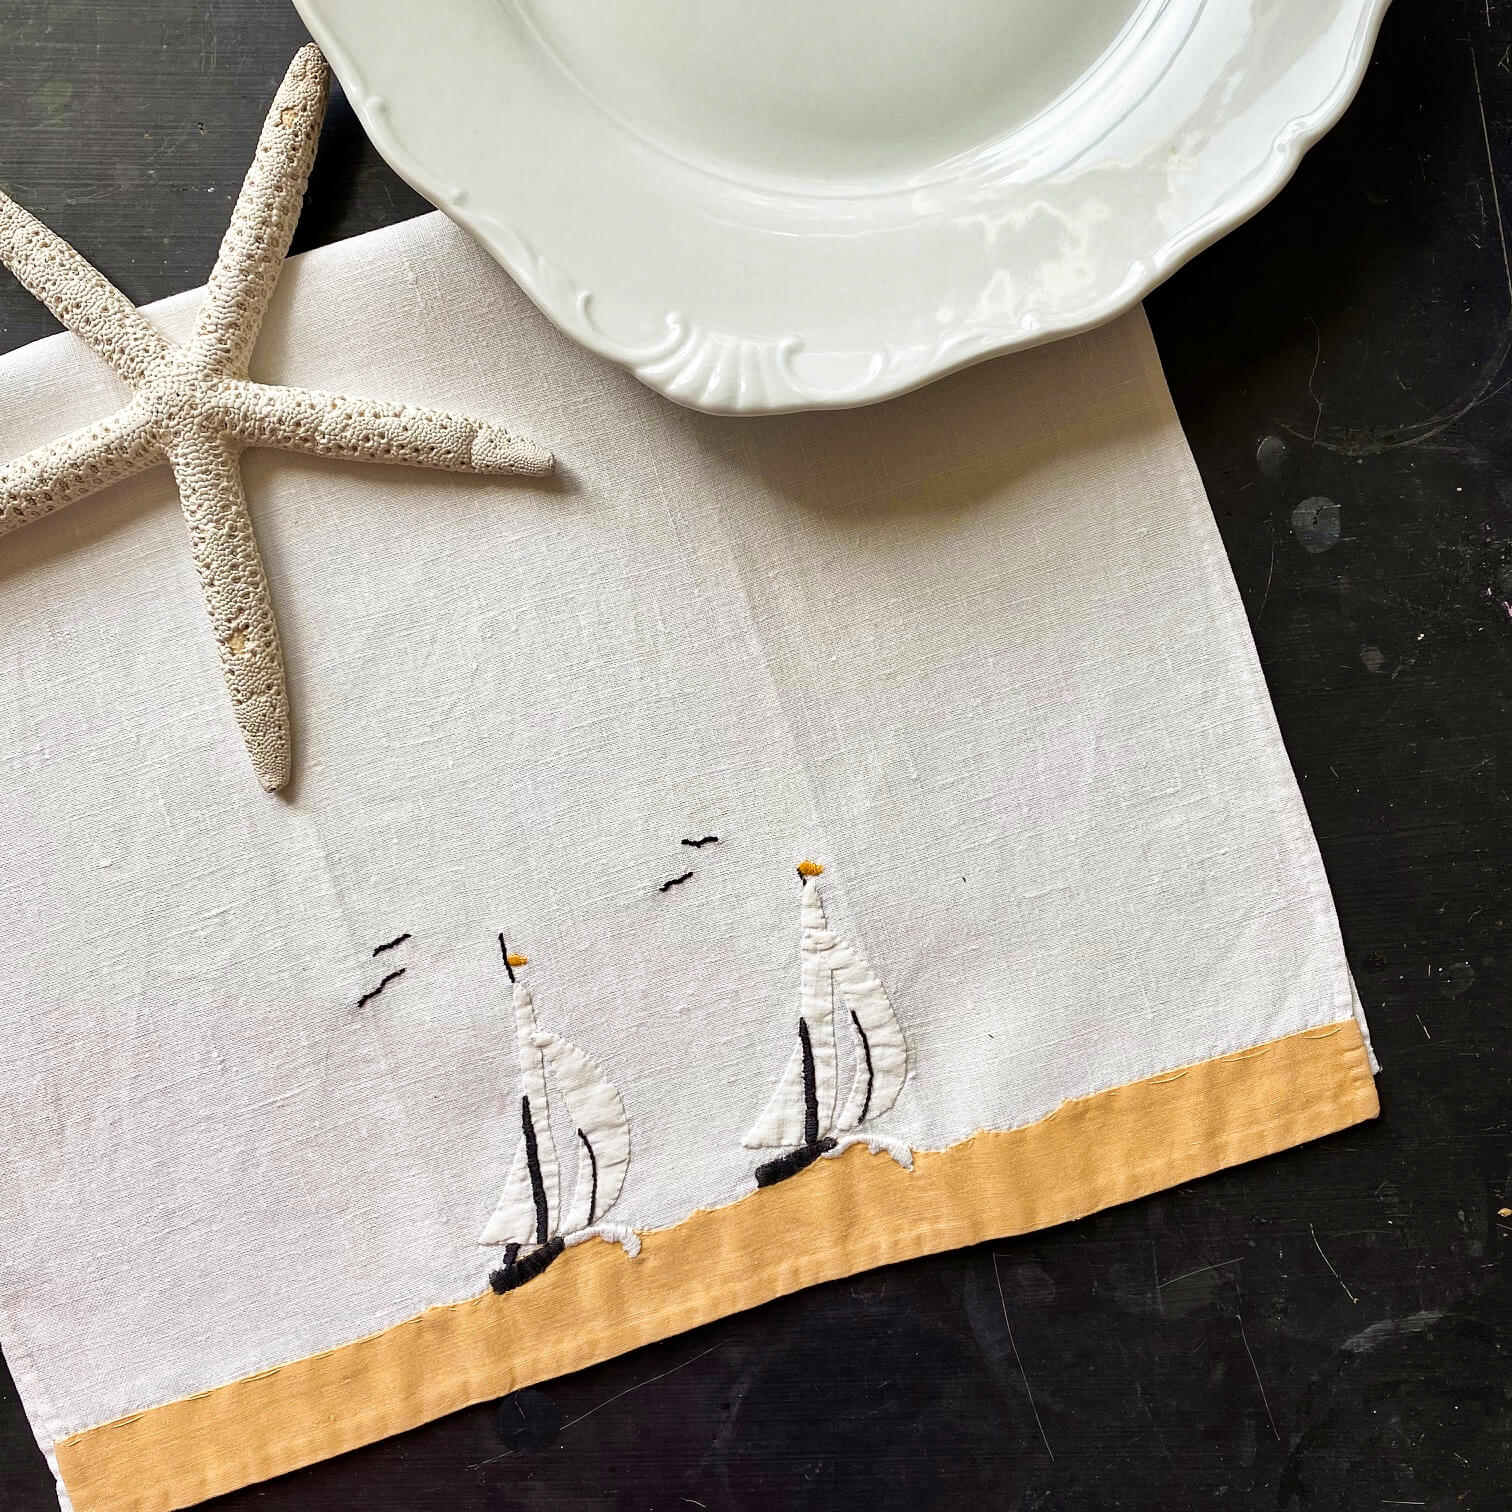 Vintage Embroidered Sailboat Applique Linen Kitchen Towels - Handstitched circa 1940s-1950s - Pair of Two 20x12